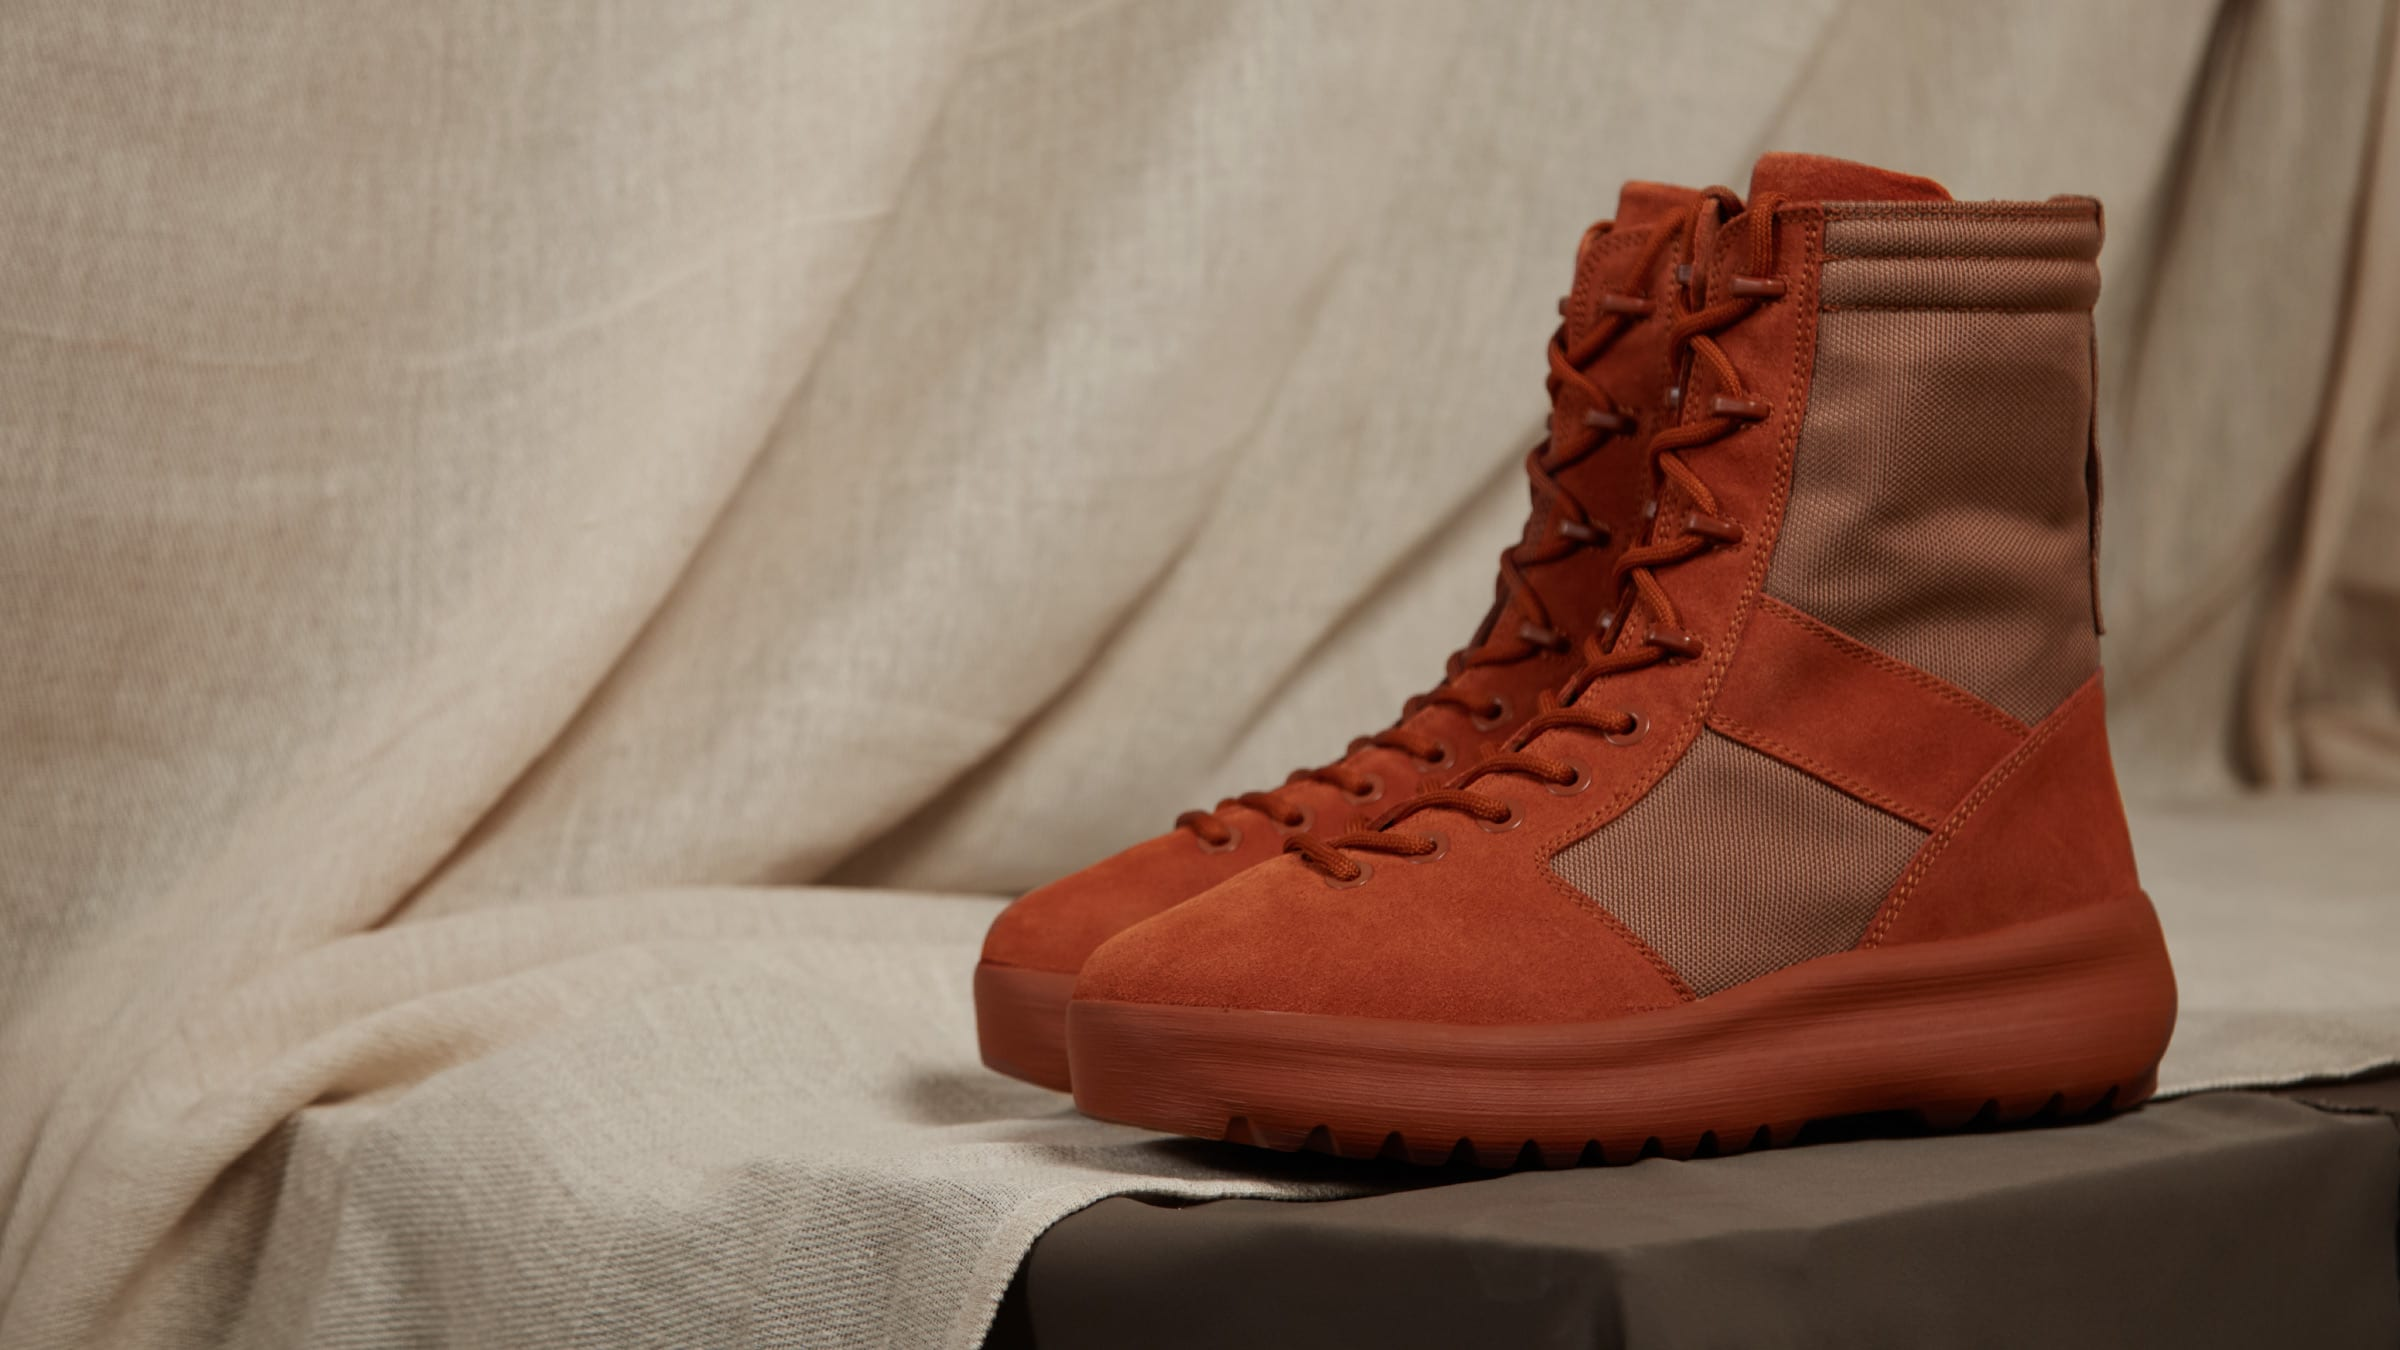 1bfd786d63a28 Yeezy Season 3 Military Boot Burnt Sienna